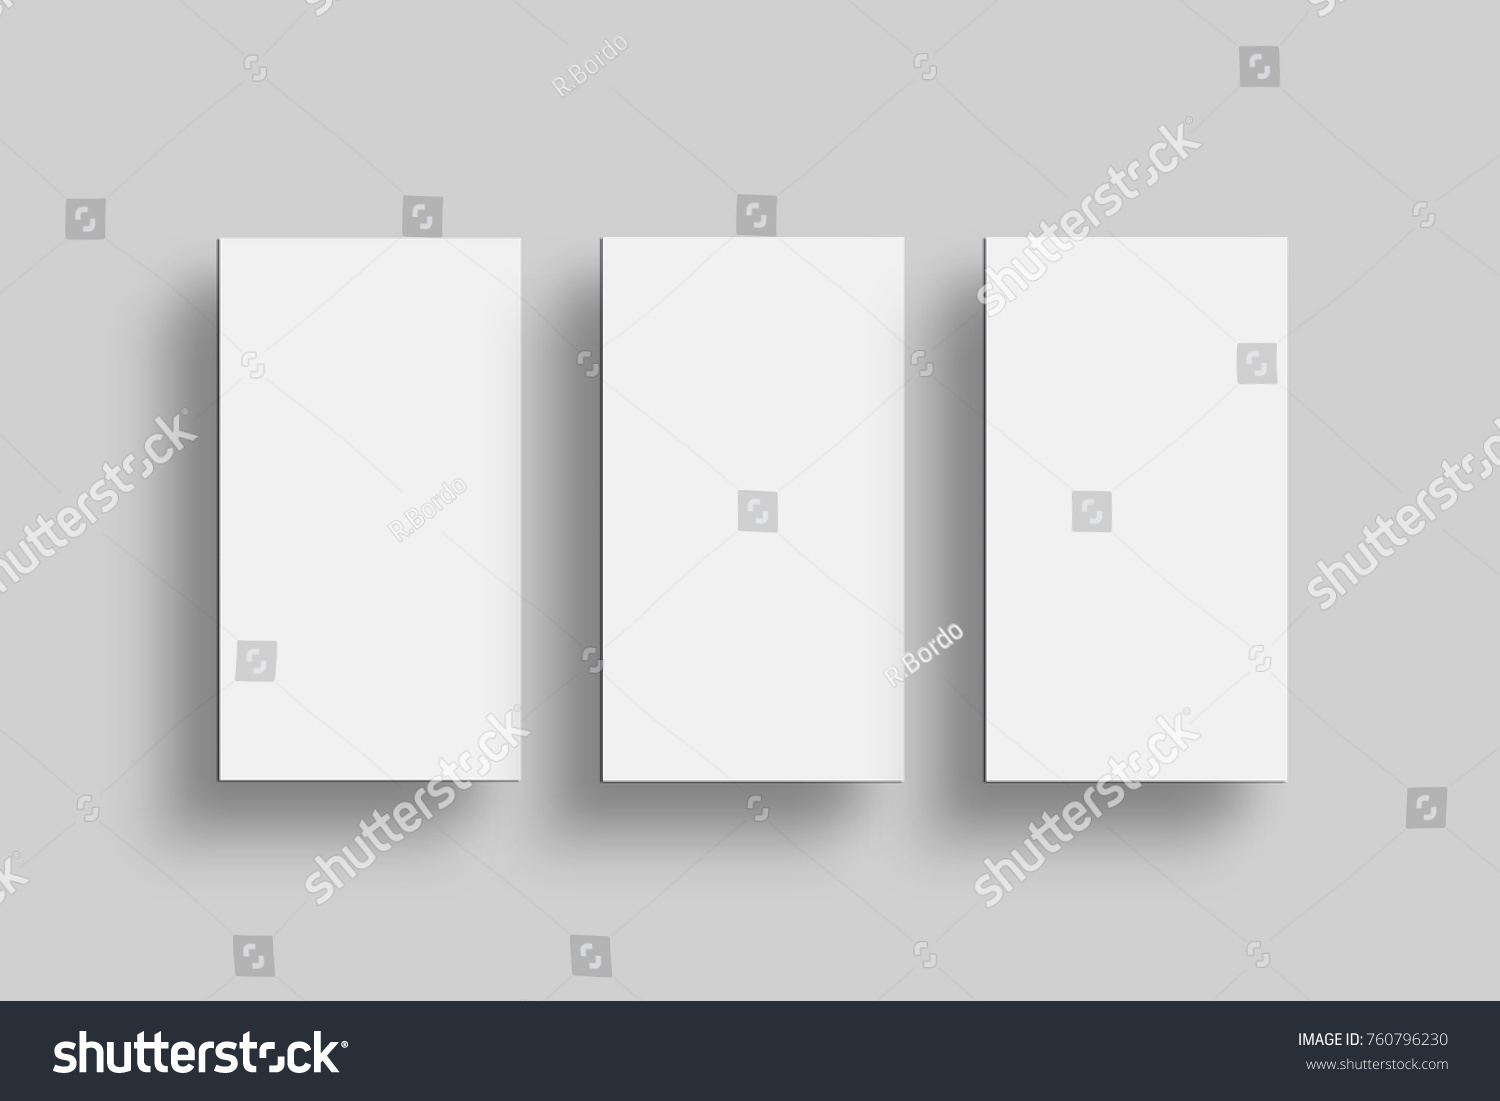 Opened And Closed Blank Greeting Card Mockup Top View On Leaflet Or